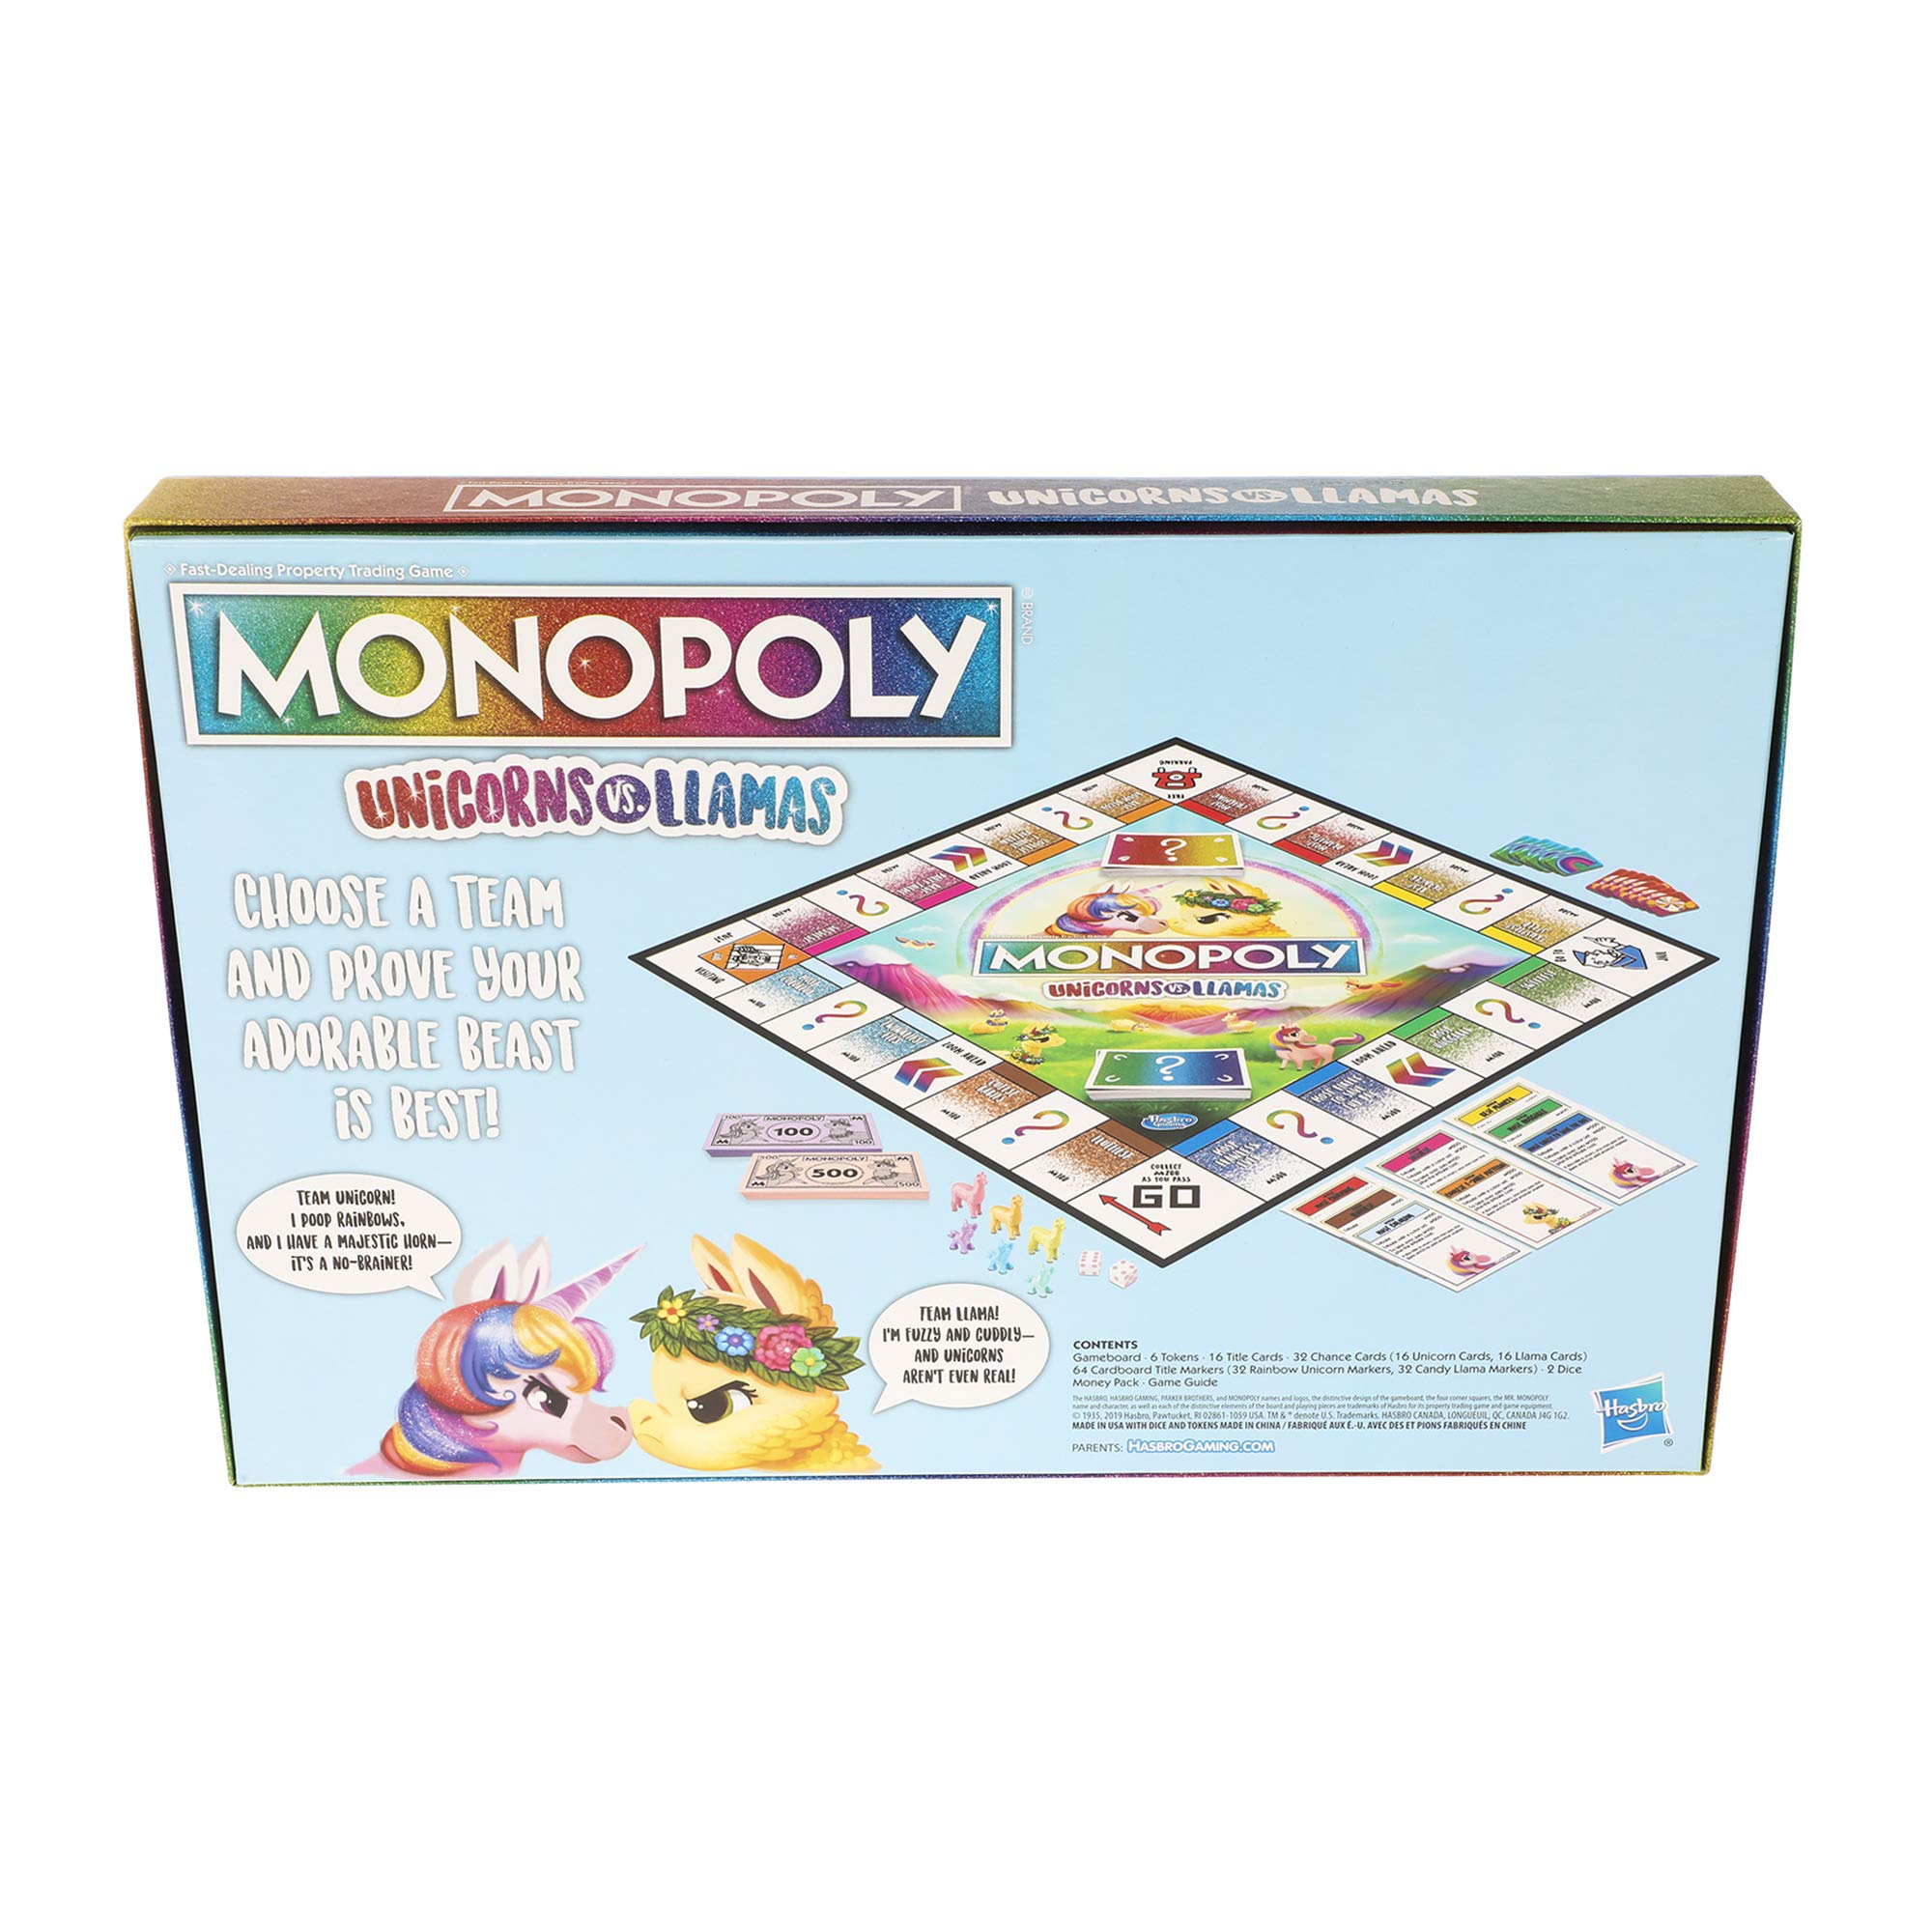 NEW Monopoly Unicorns Vs Llamas New Release Fast Shipping Exclusive